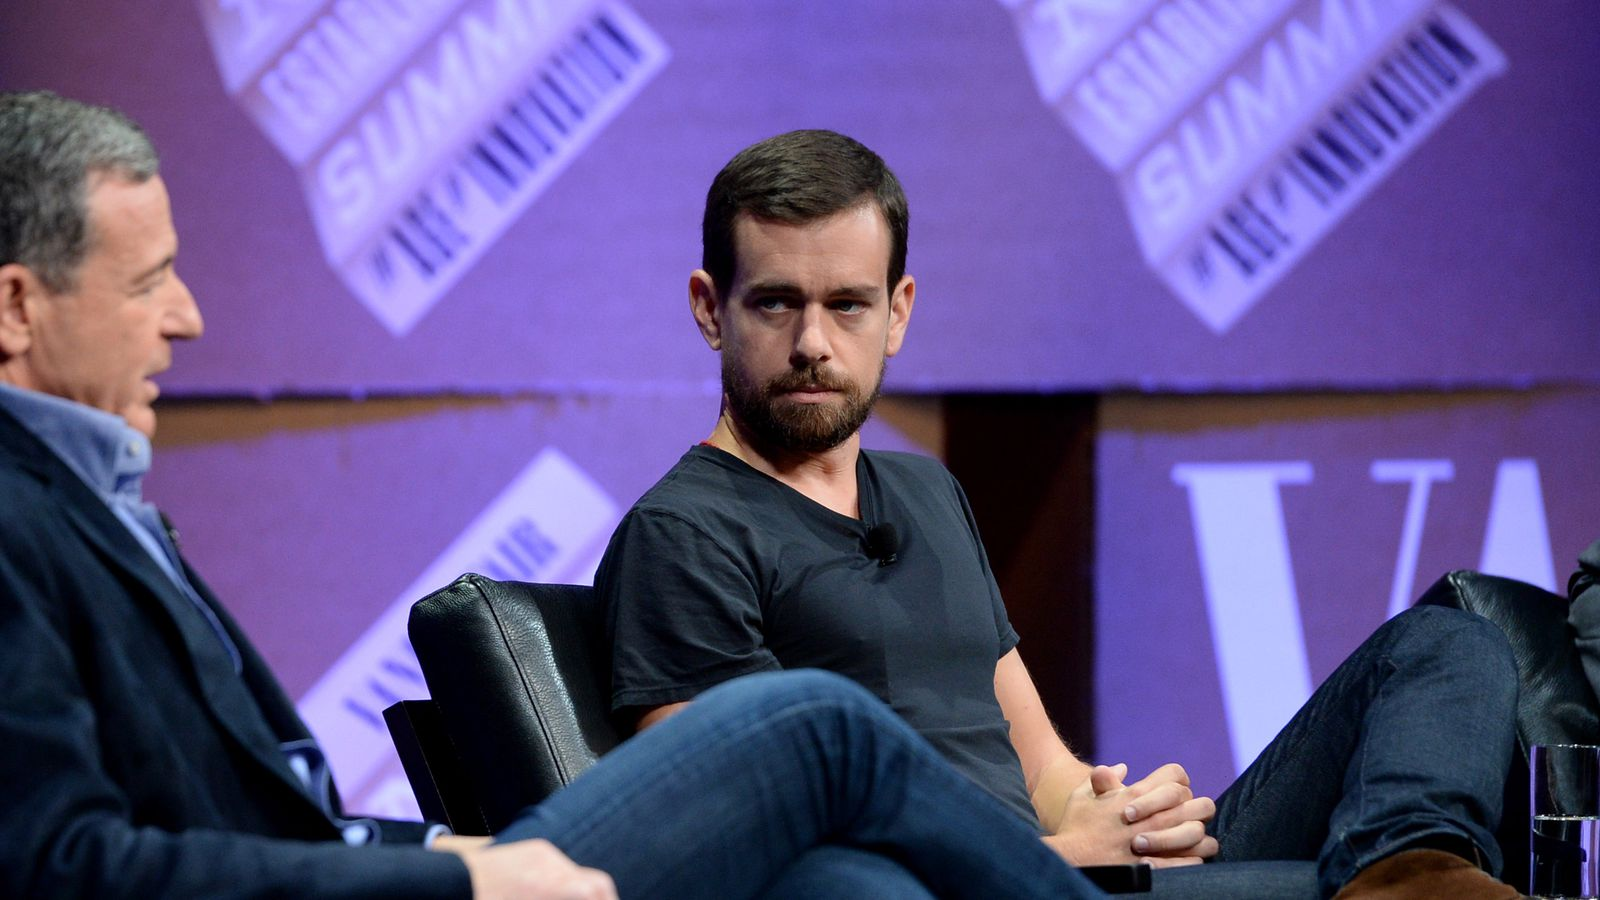 Wall Street thinks Twitter's business is shrinking